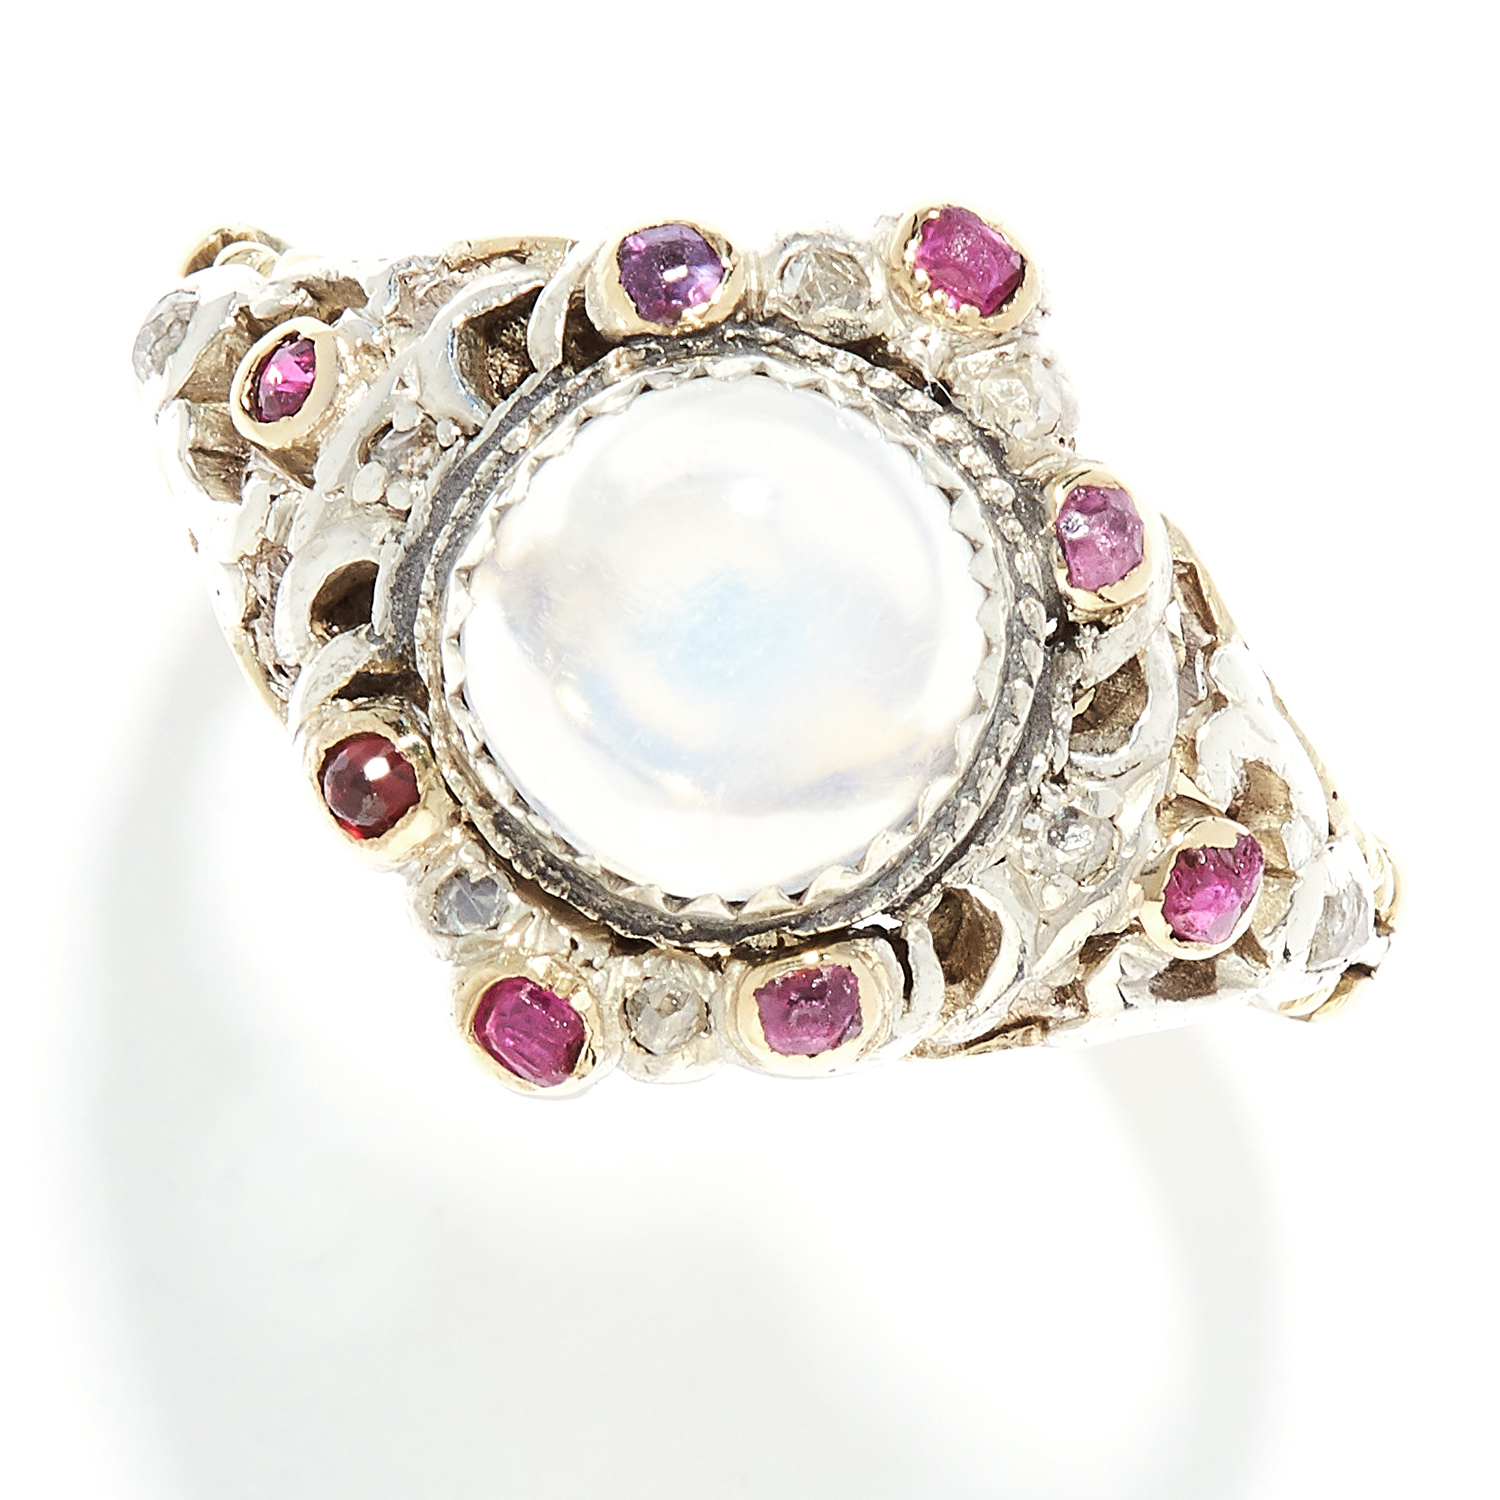 MOONSTONE, RUBY AND DIAMOND RING, VICTORIAN in high carat yellow gold, set with a cabochon